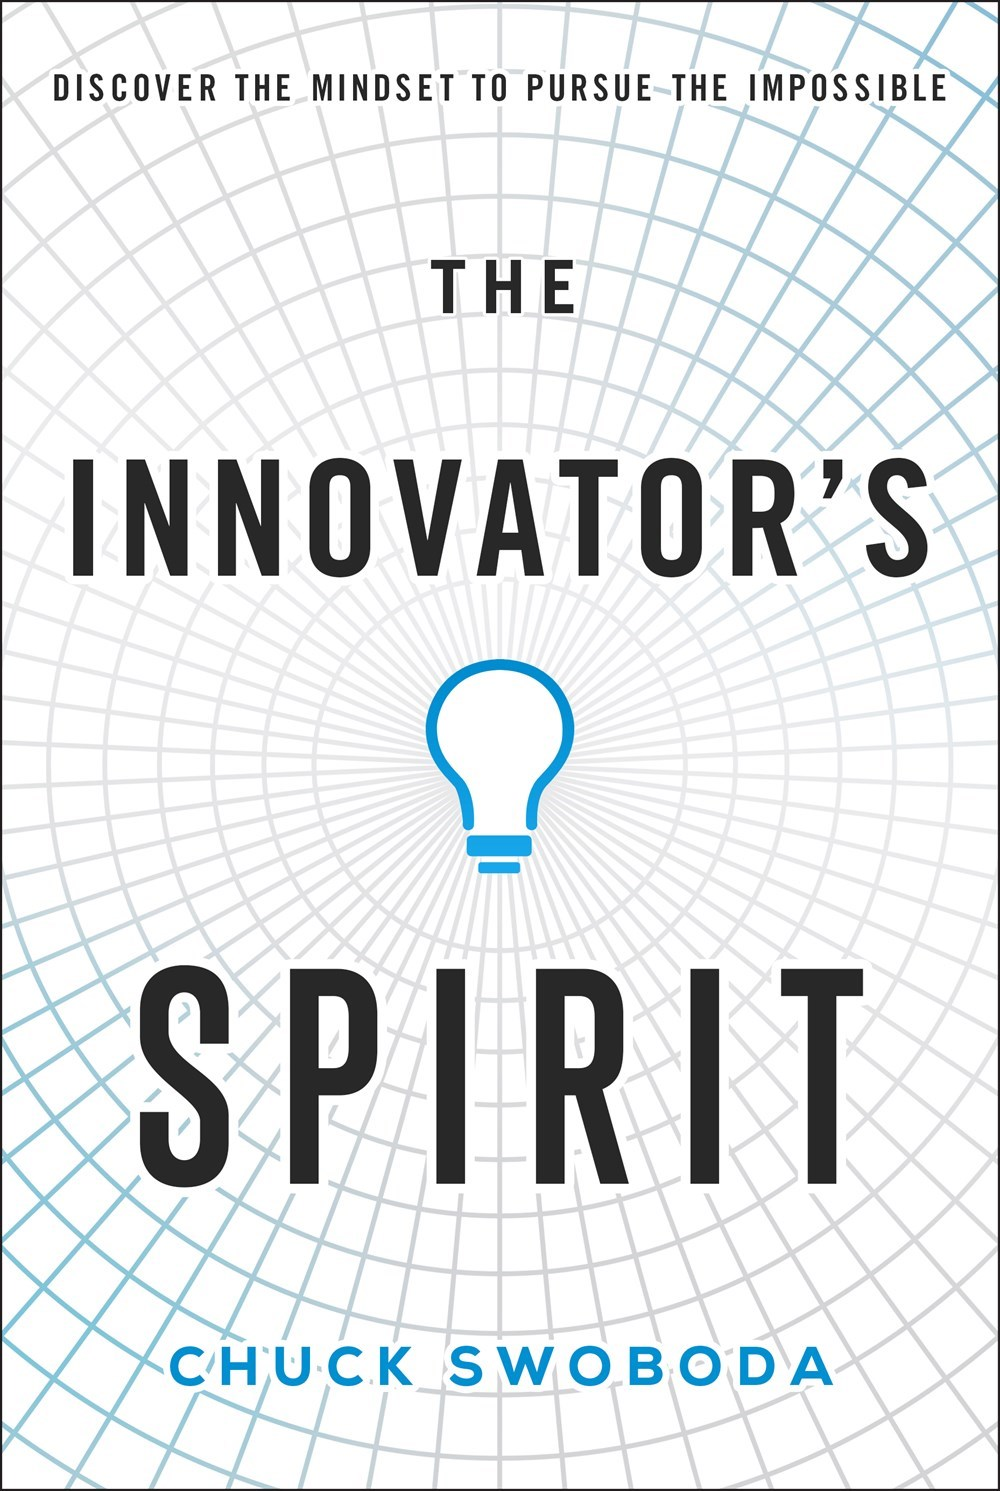 The Innovator's Spirit: Discover the Mindset to Pursue the Impossible